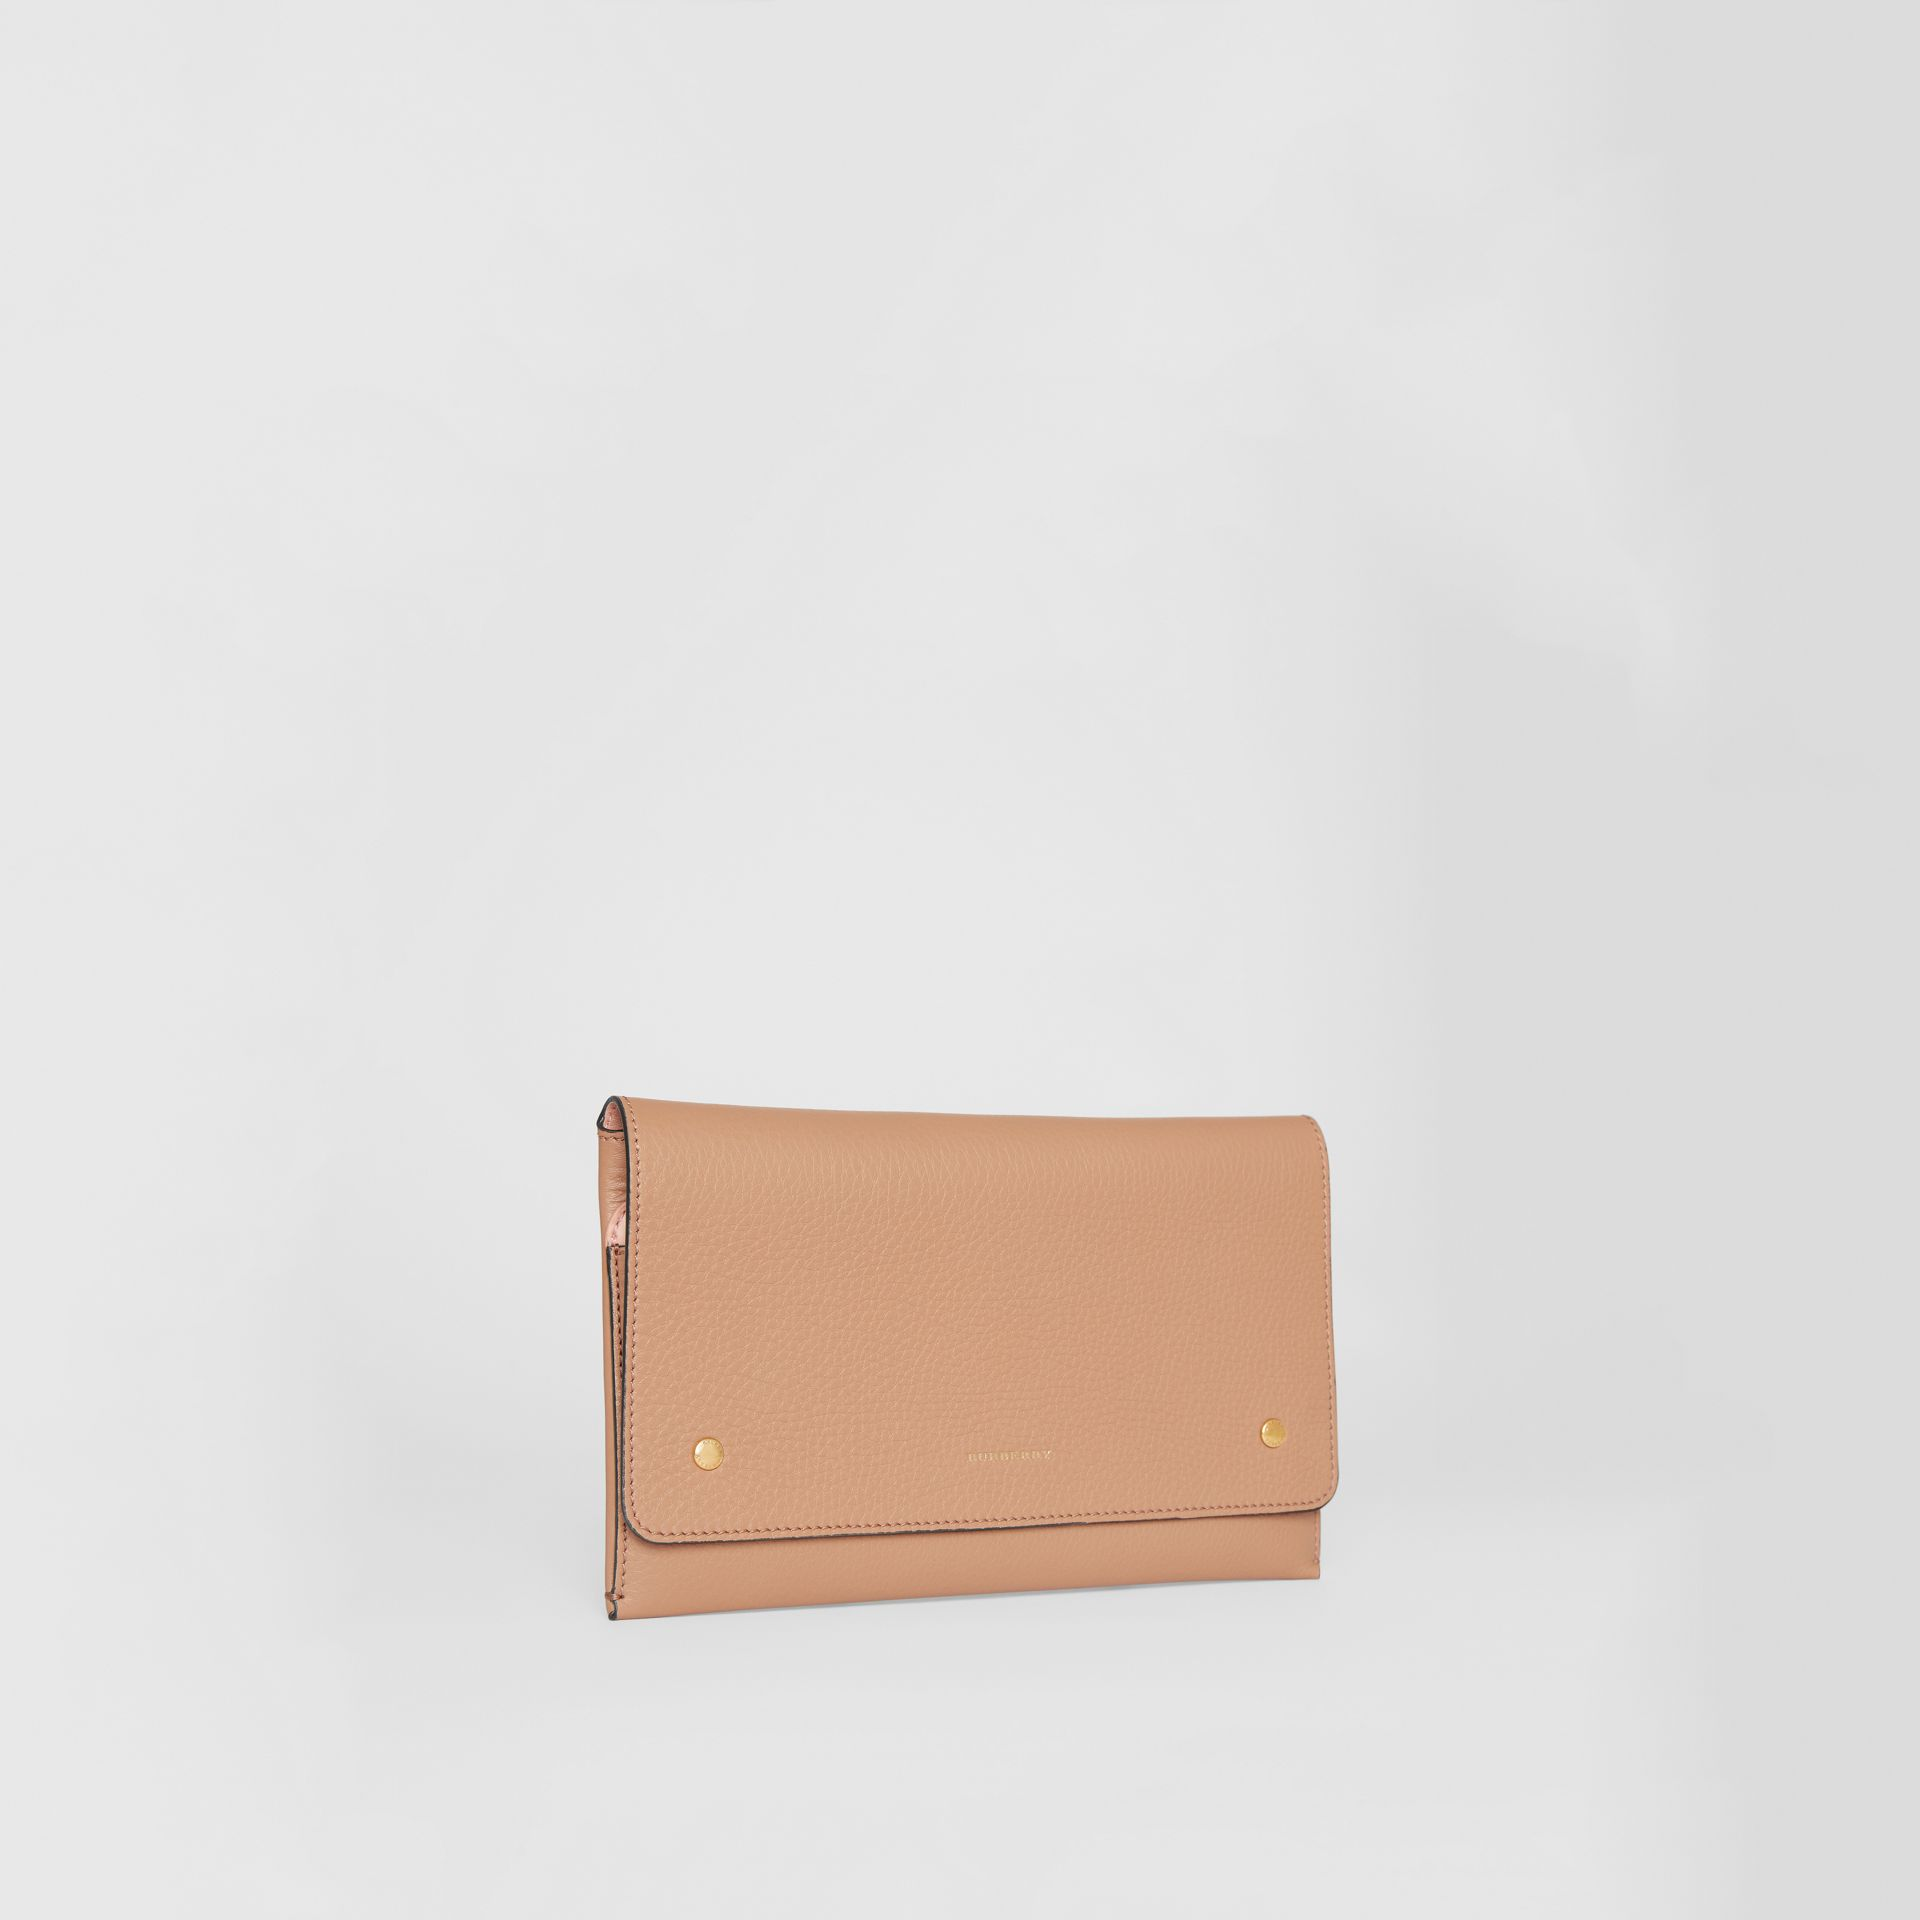 Two-tone Leather Wristlet Clutch in Light Camel - Women | Burberry United Kingdom - gallery image 6